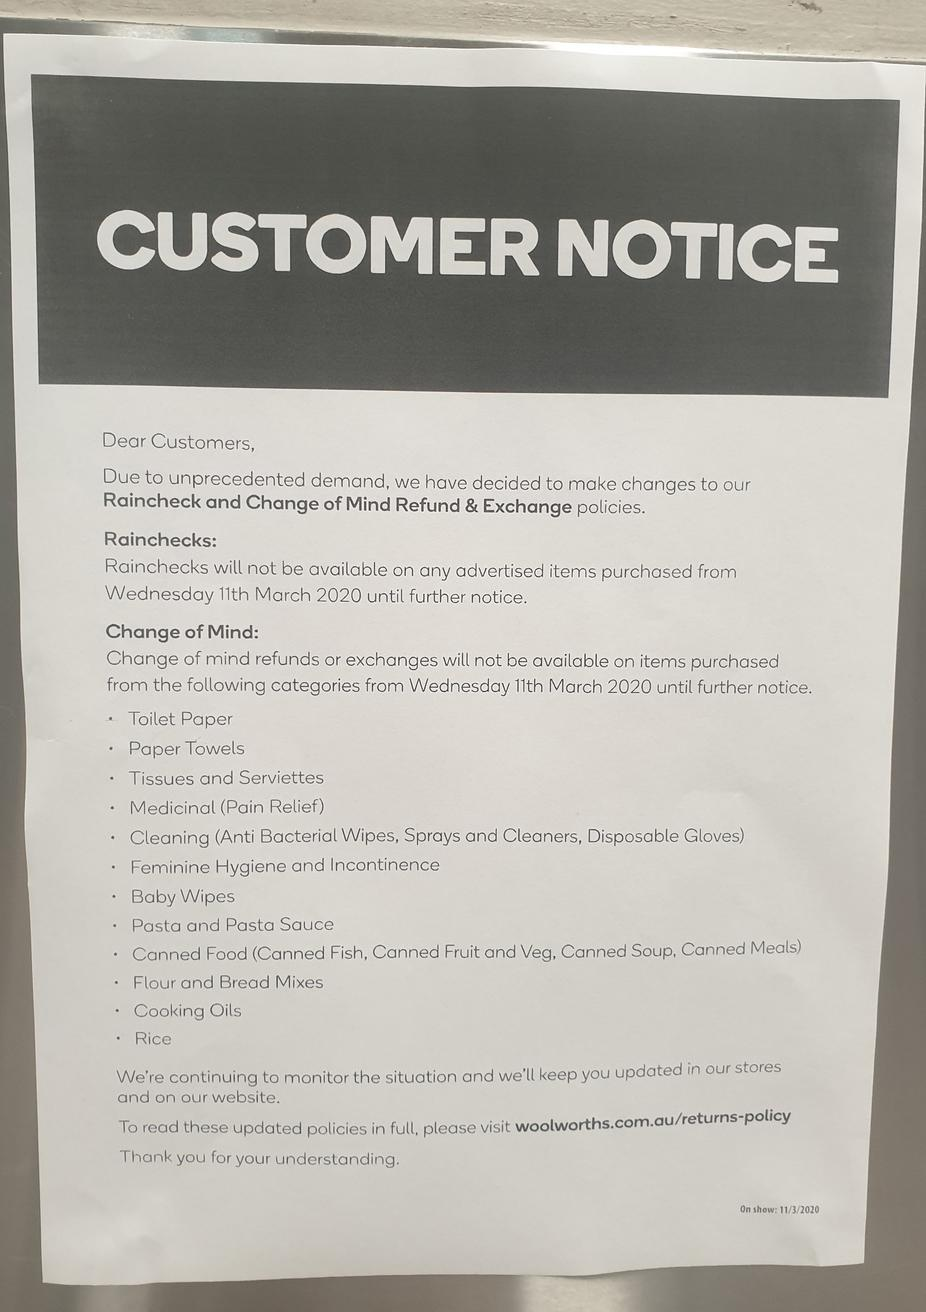 The notice advising Woolworths customers of limitations on certain products.